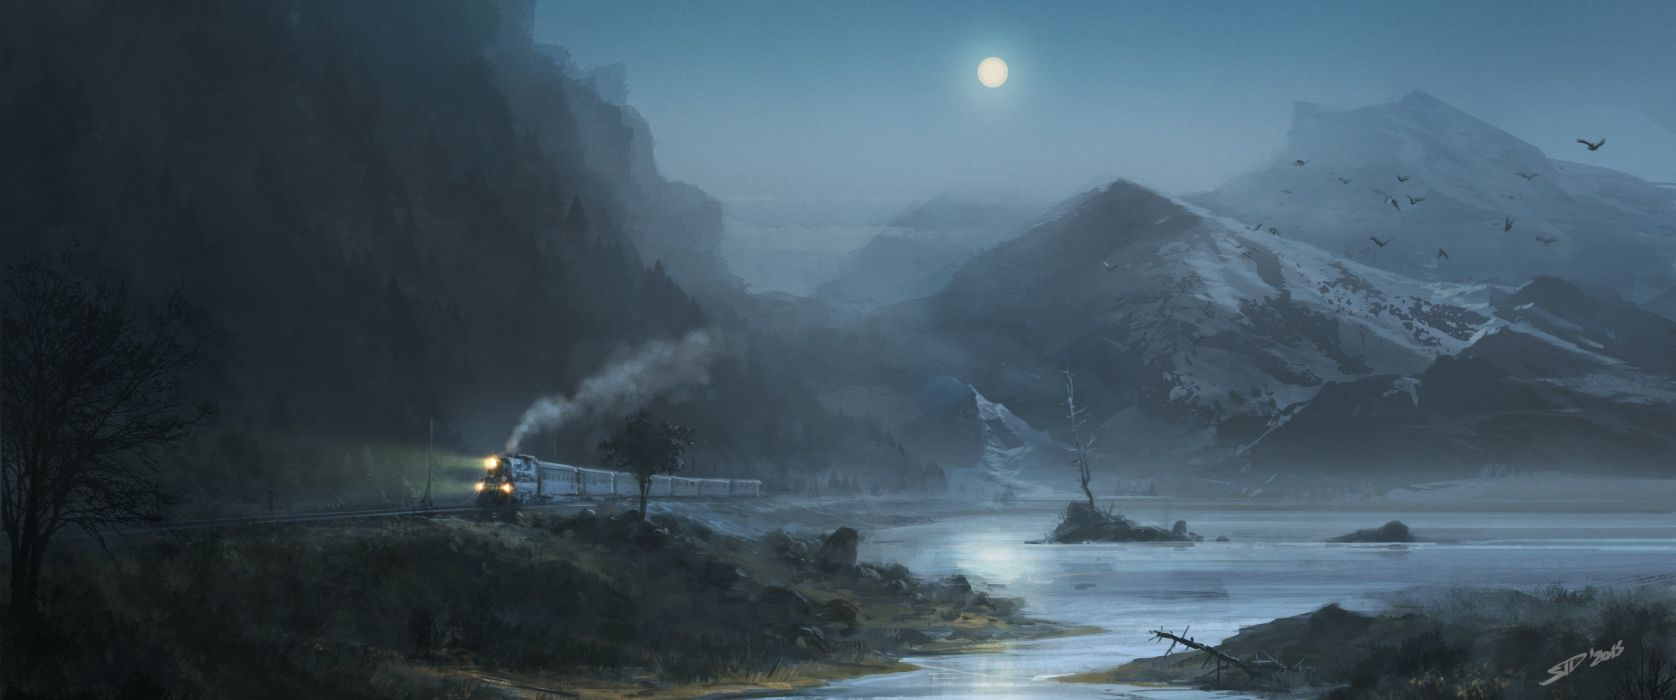 moon birds lake mountains train night painting wallpaper